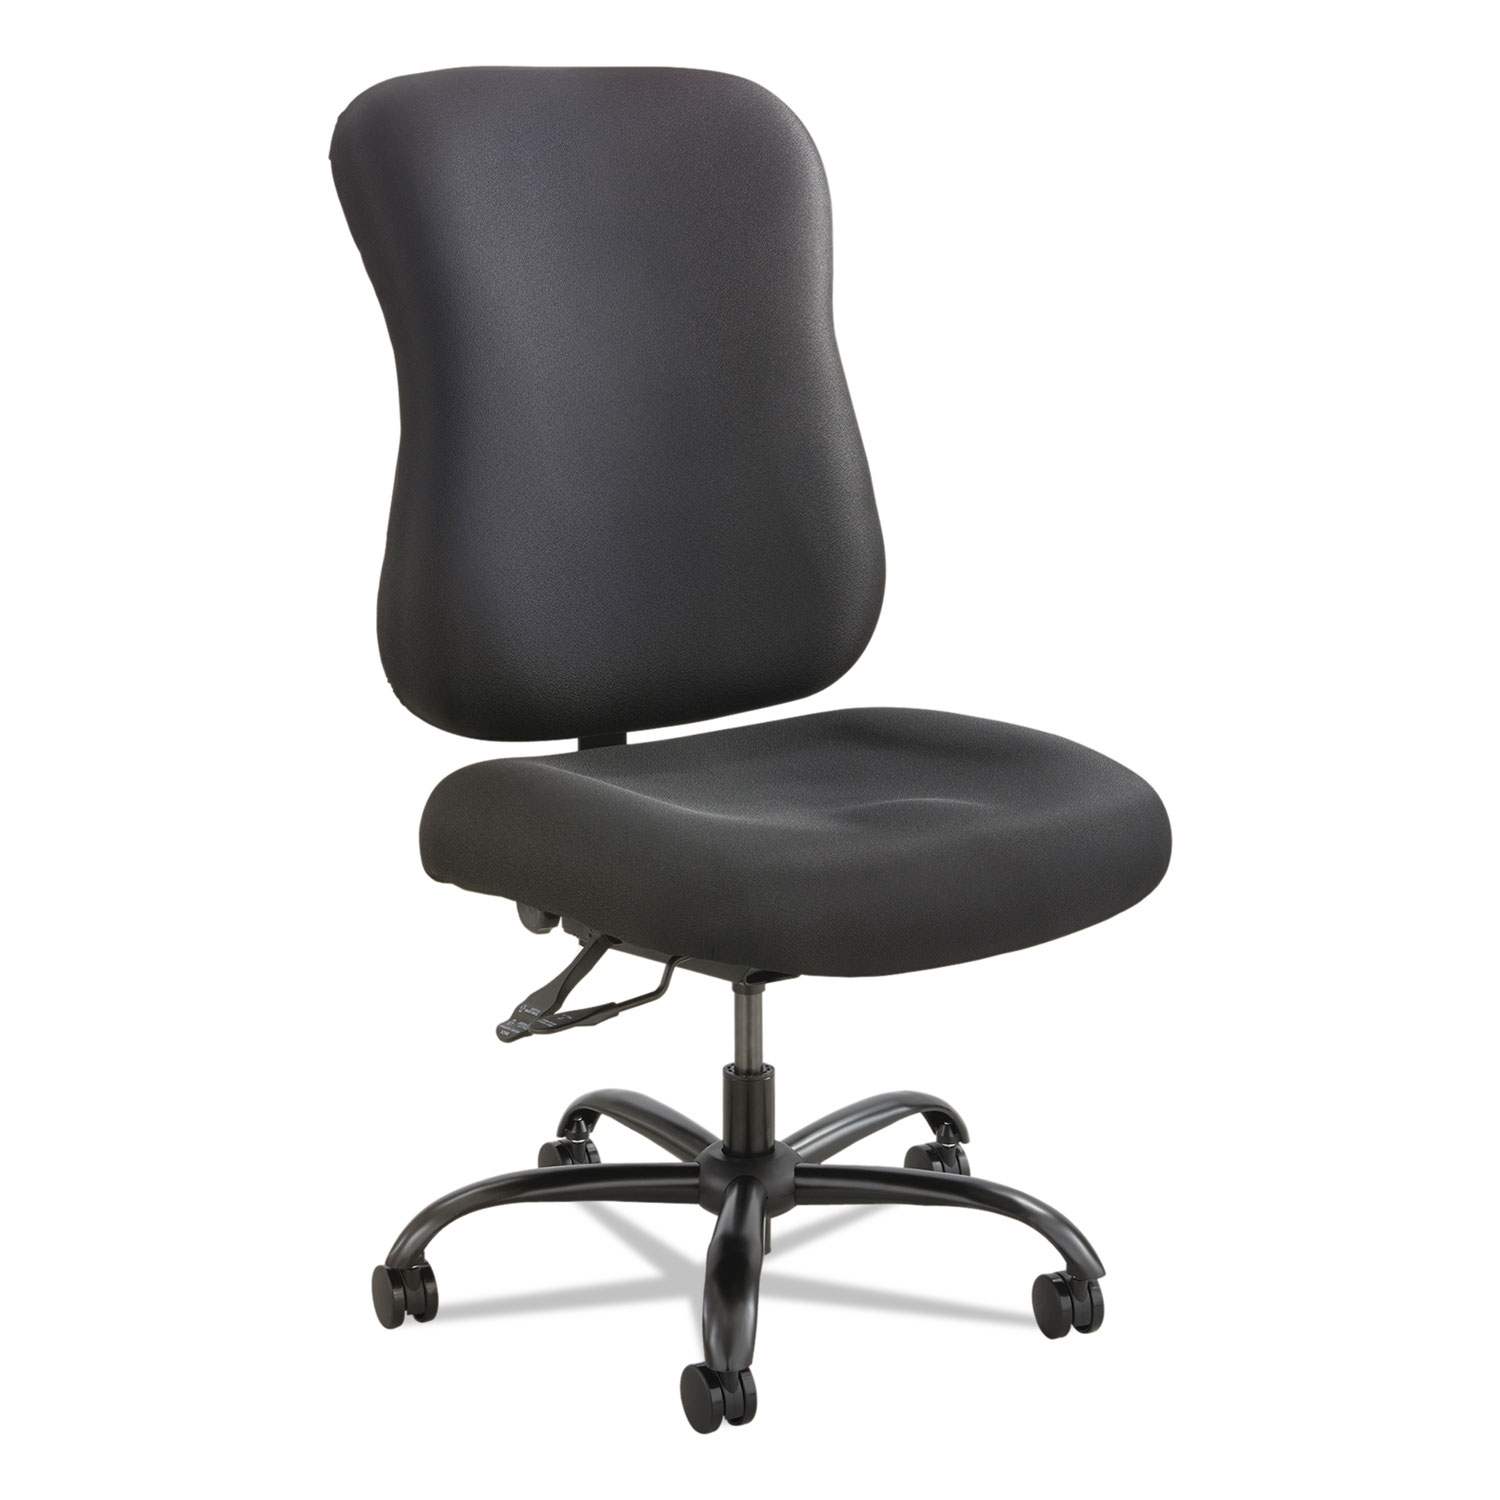 tall desk chairs with backs sofa chair accessories look for optimus high back big and other